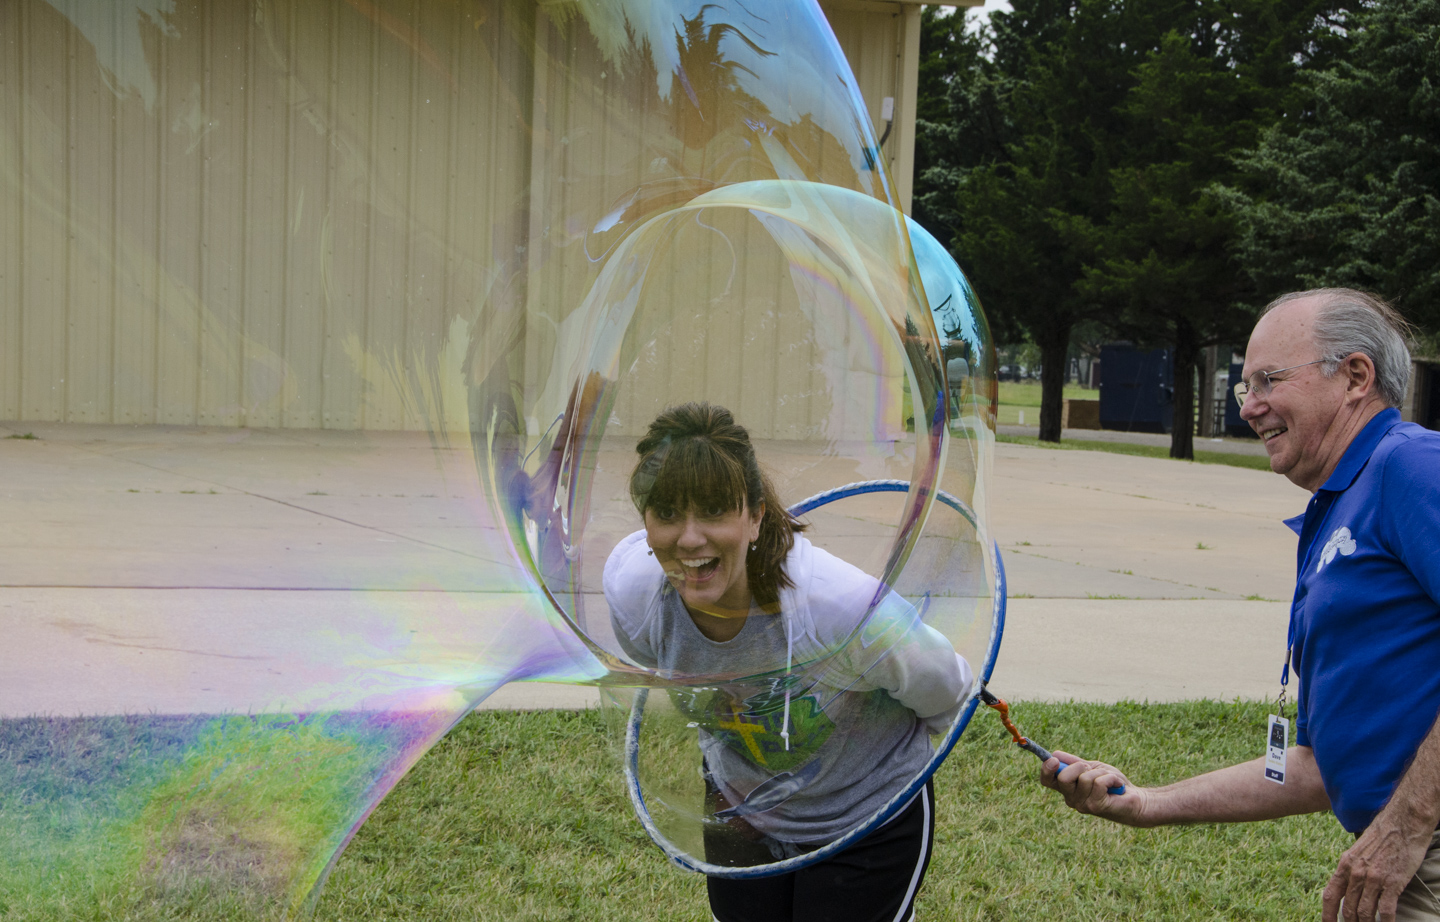 Head in a bubble